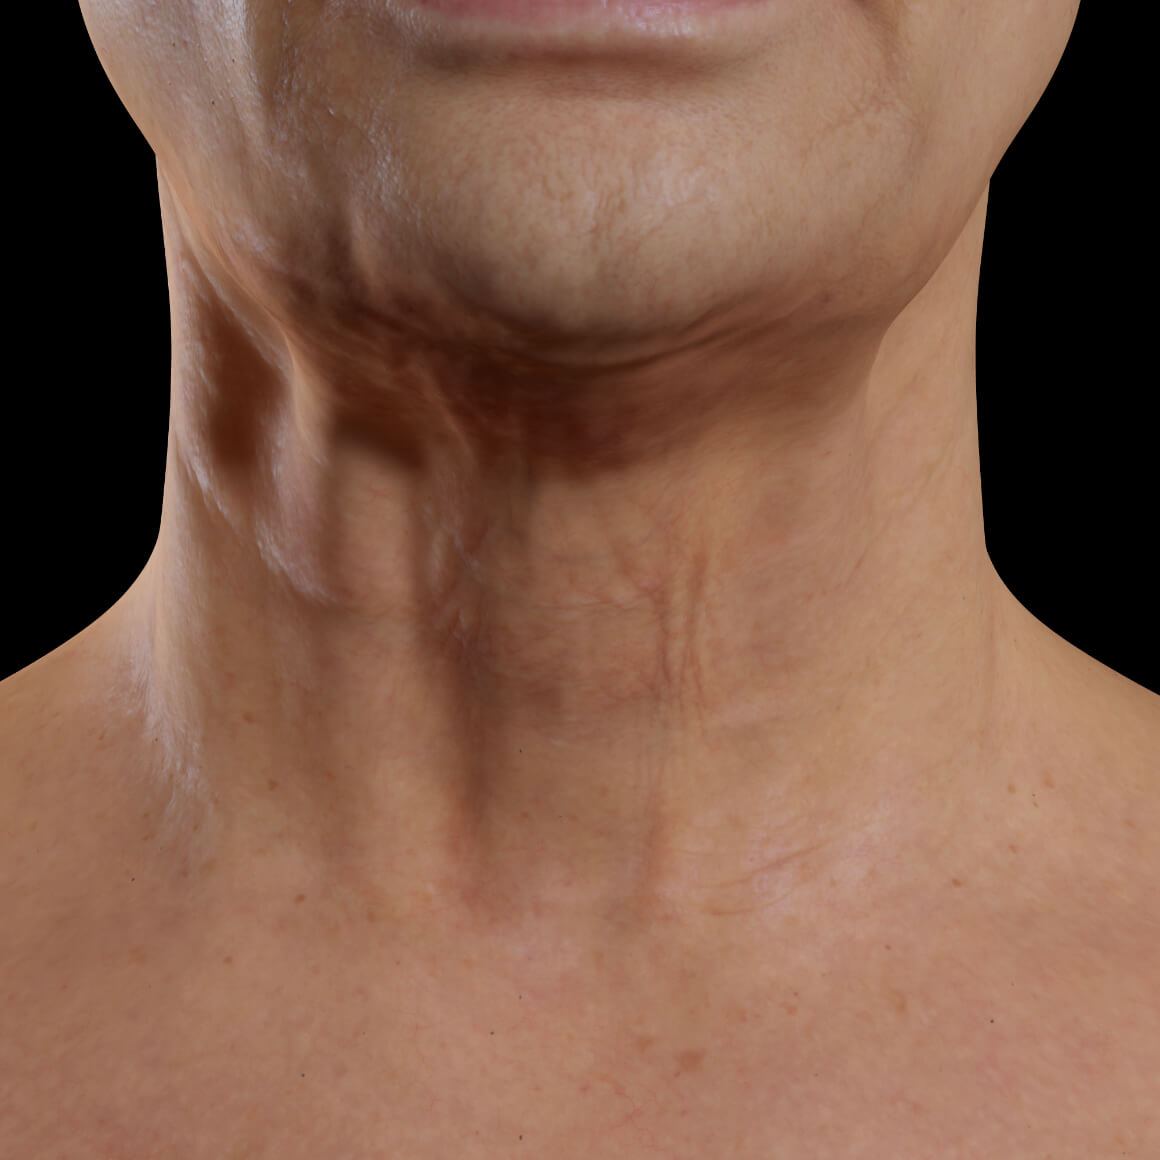 Clinique Chloé female patient facing front after Venus Legacy neck skin tightening treatments